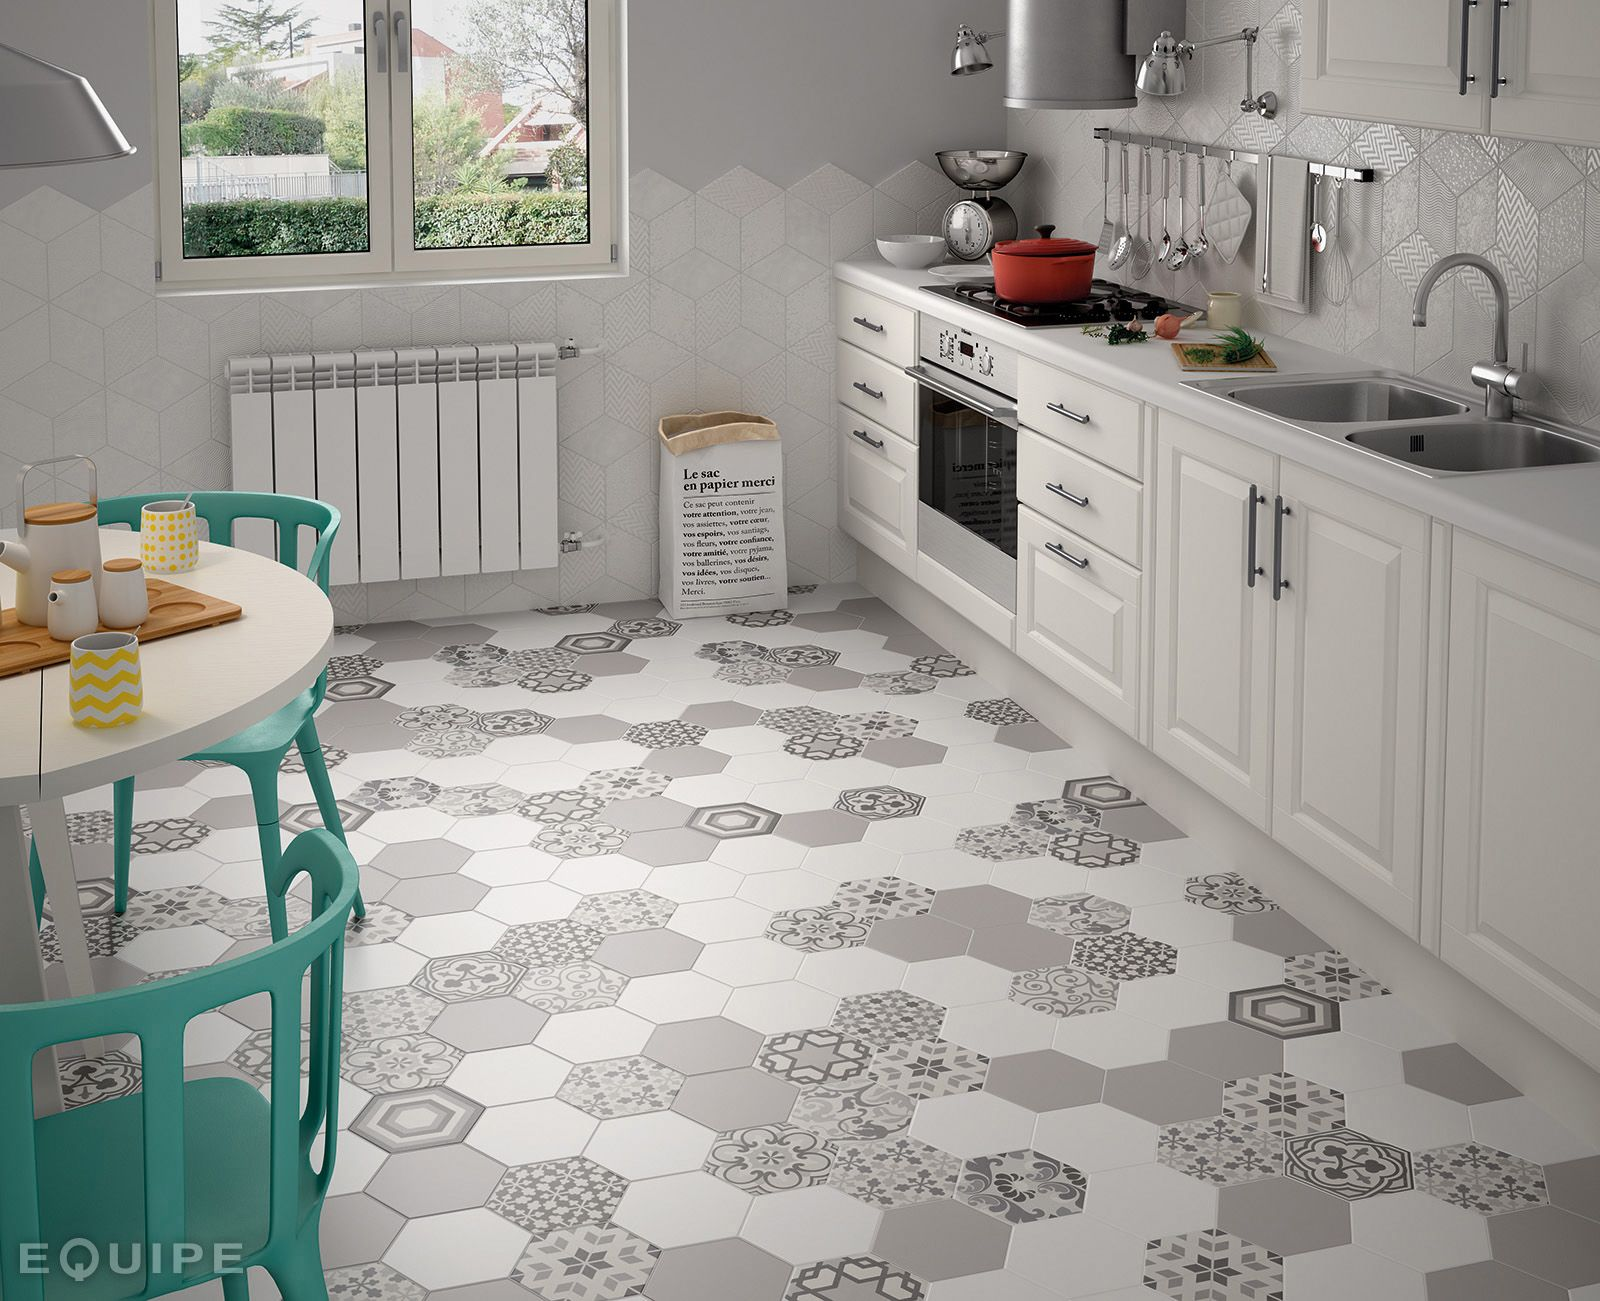 Carrelage hexagonal 17,5x20 Tomette Harmony B&W Hexatile 1m2 - As de ...